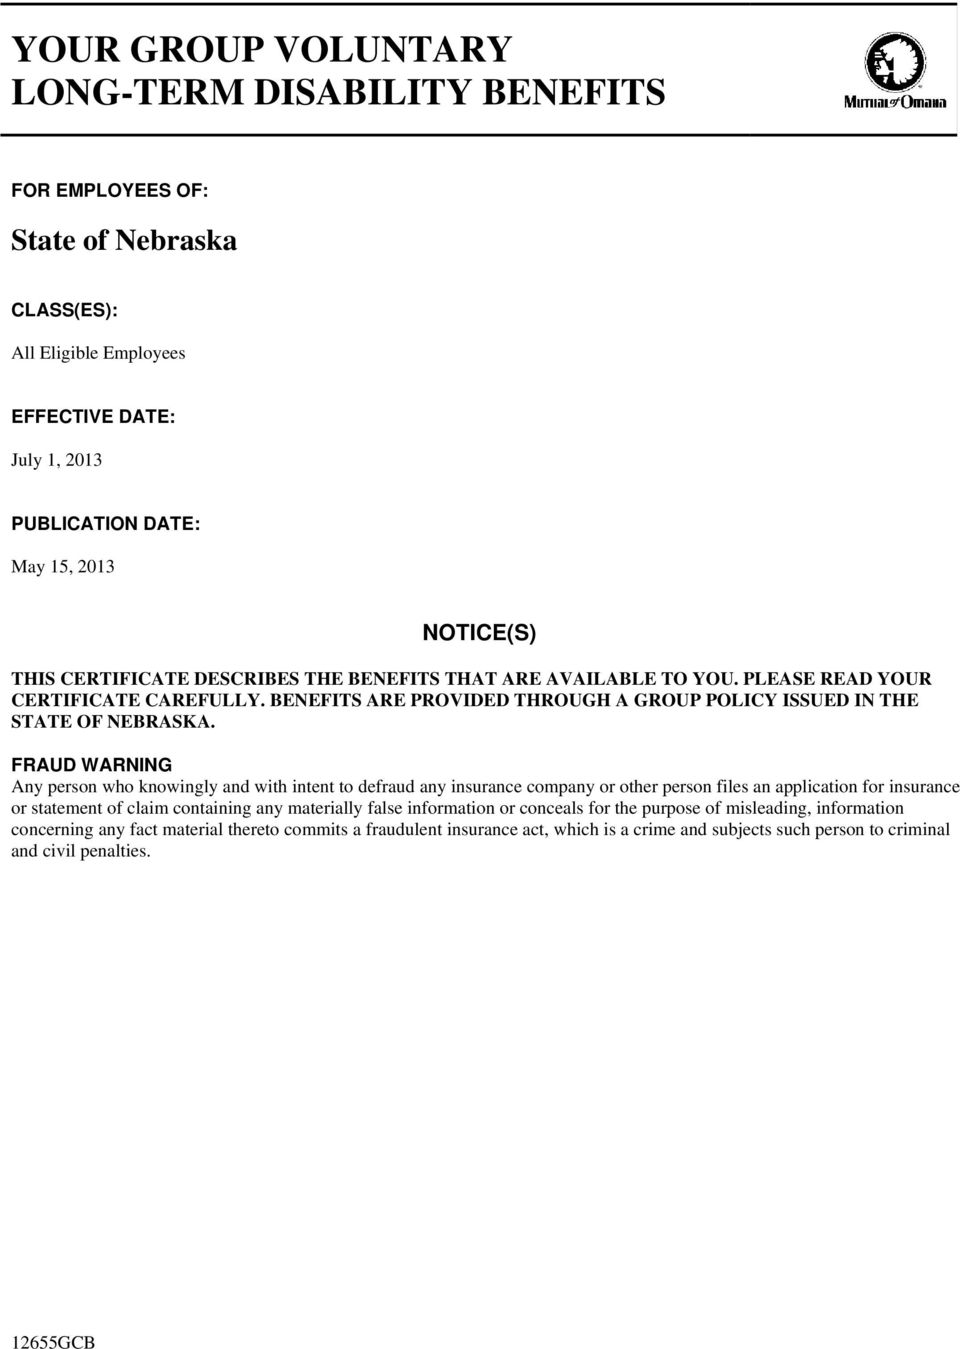 CERTIFICATE DESCRIBES THE BENEFITS THAT ARE AVAILABLE TO YOU. PLEASE READ YOUR CERTIFICATE CAREFULLY. BENEFITS ARE PROVIDED THROUGH A GROUP POLICY ISSUED IN THE STATE OF NEBRASKA.